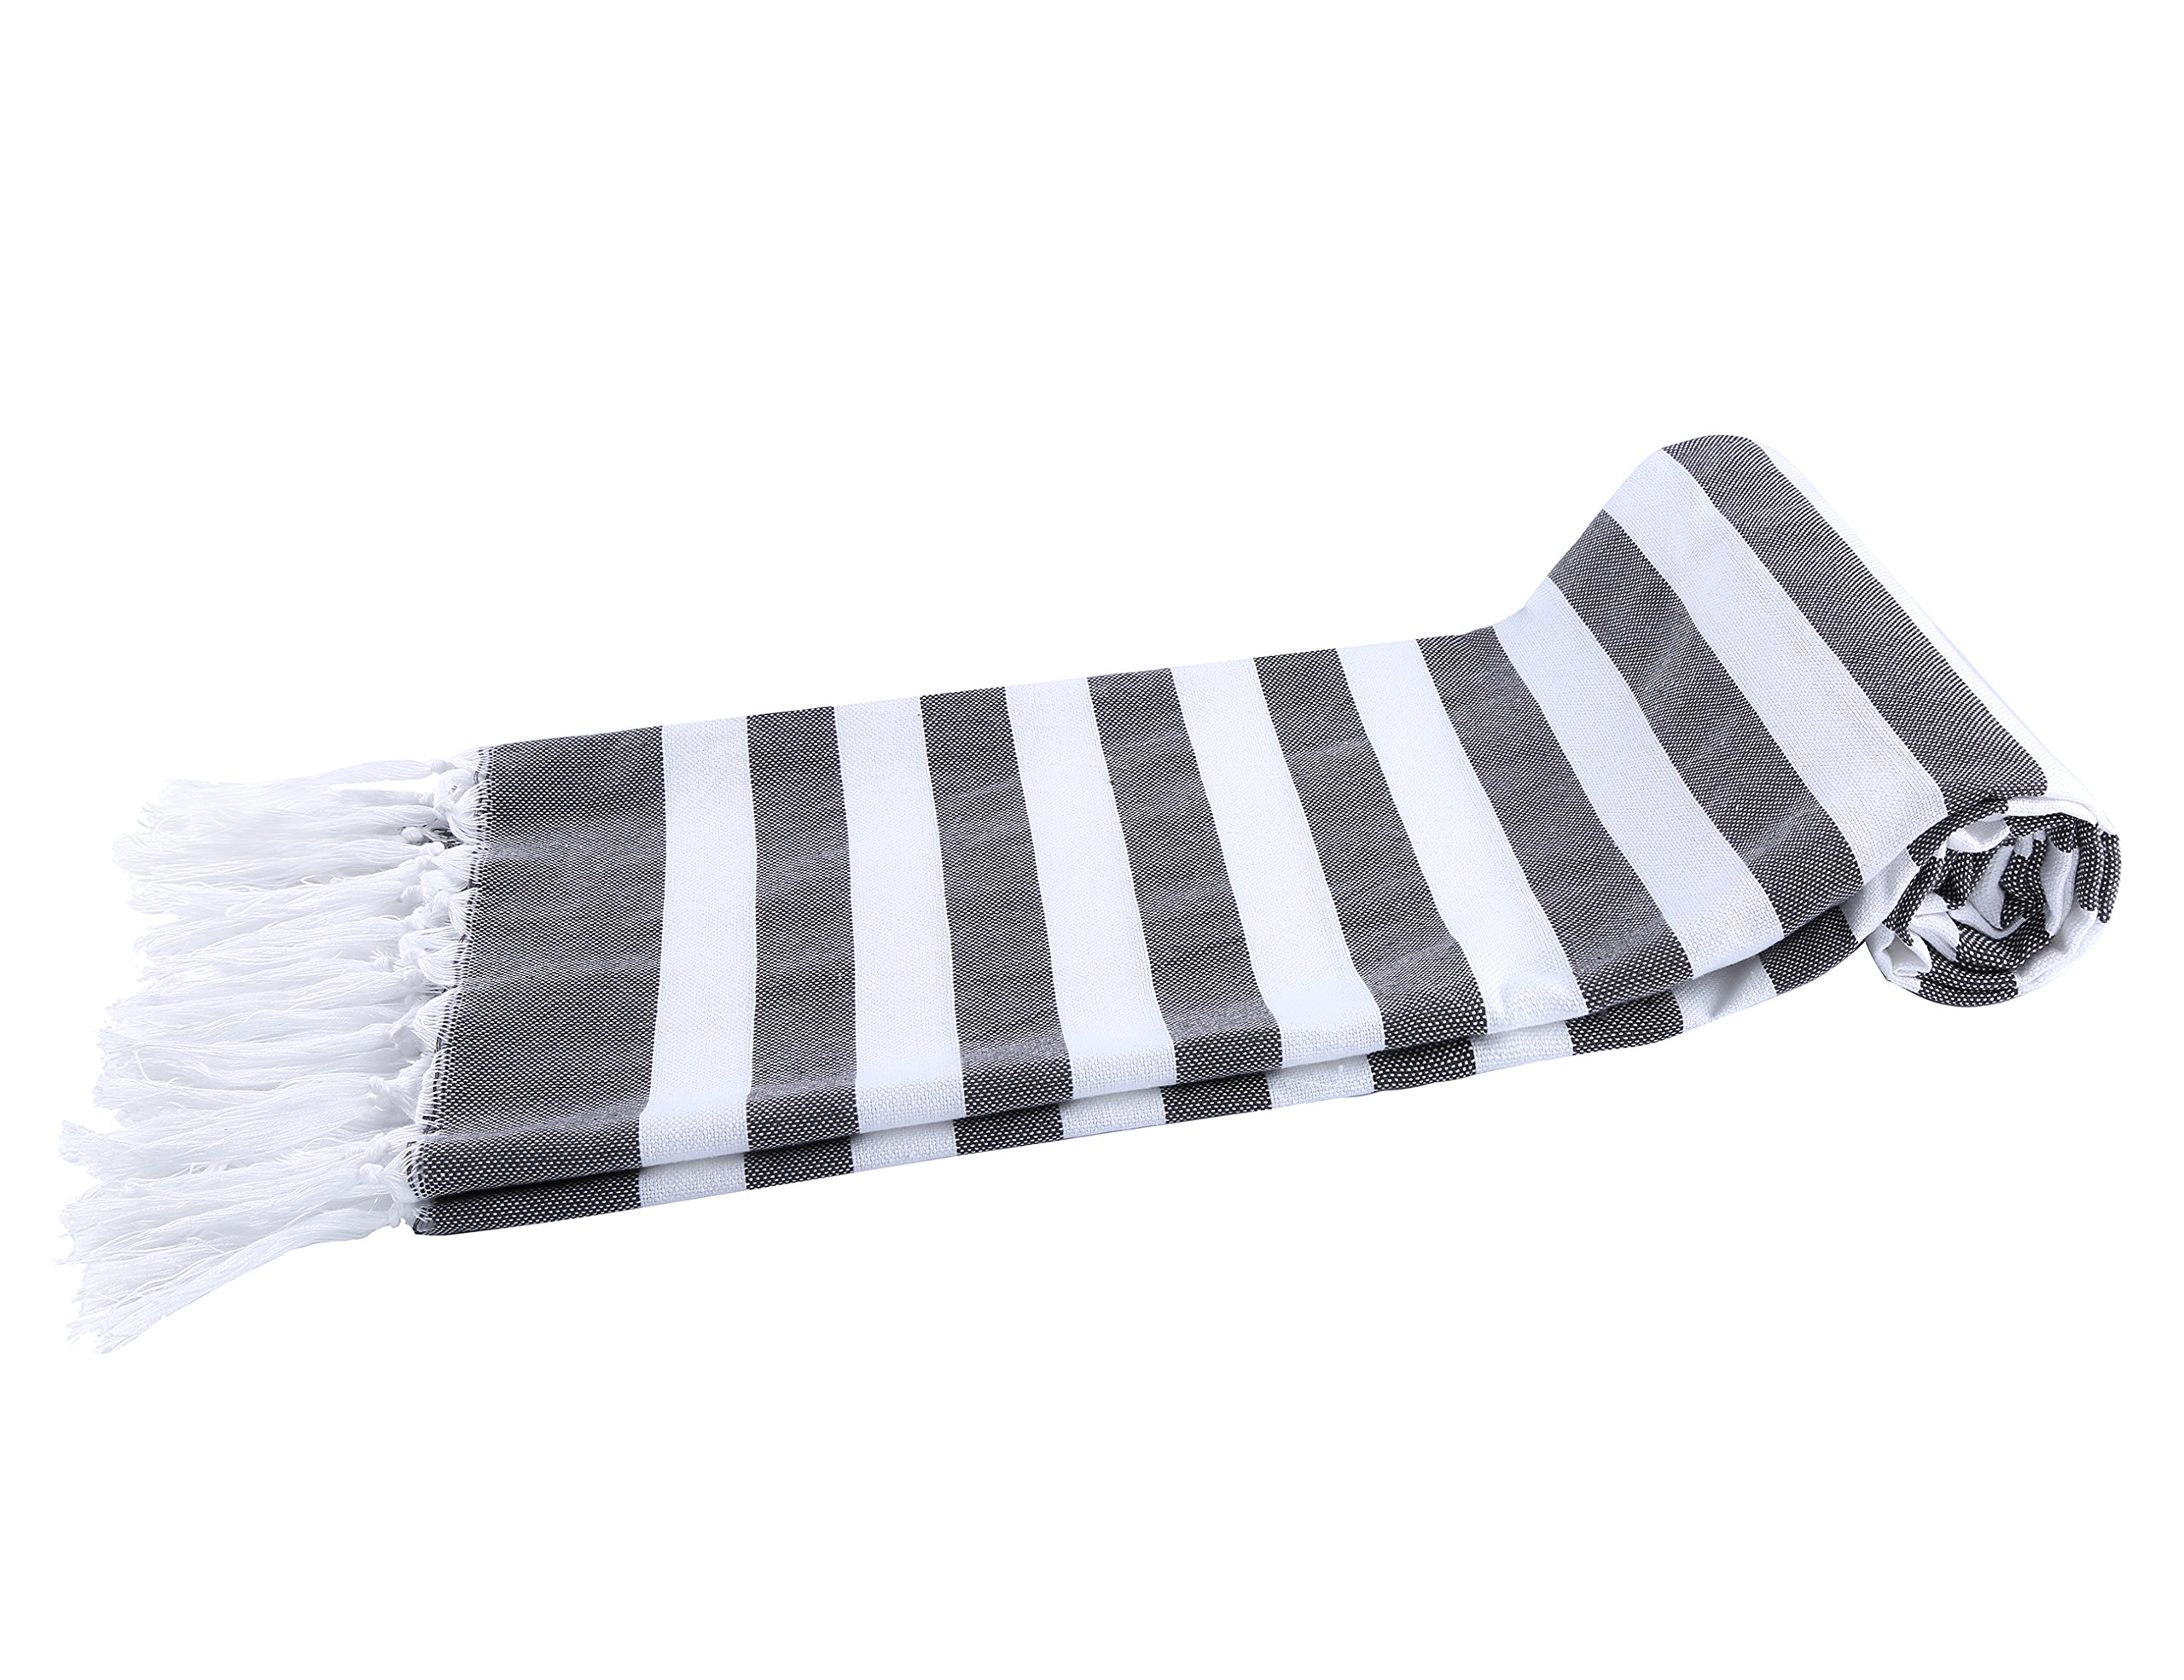 Chama 100% Cotton Extra Soft Striped Peshtemal Fouta Turkish Beach Towels Wrap Bath Towel Oversized Blanket for Baby Home Family Traveling Pool Scarf Towel Absorbency (Black&white stripes)